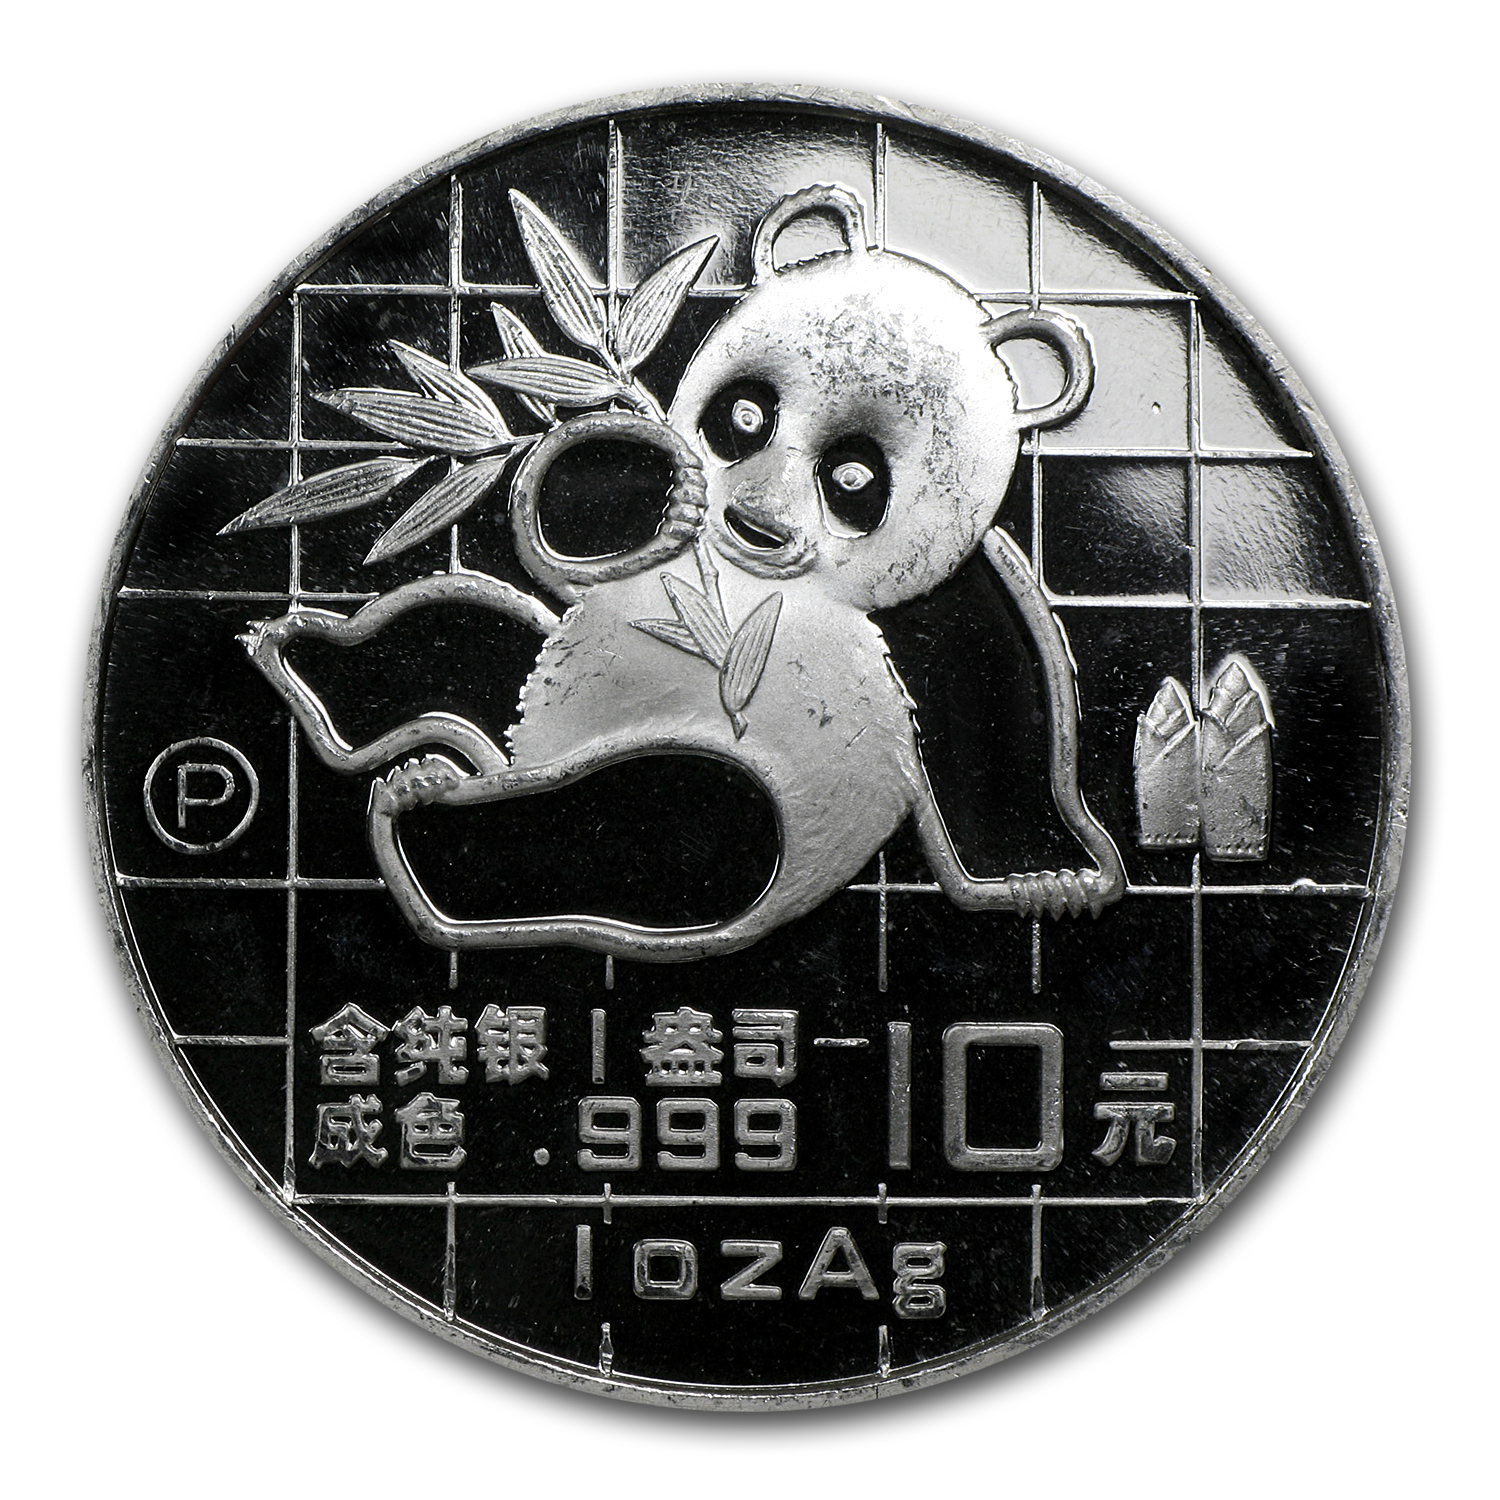 1989 China 1 oz Silver Panda Proof (Capsule only)